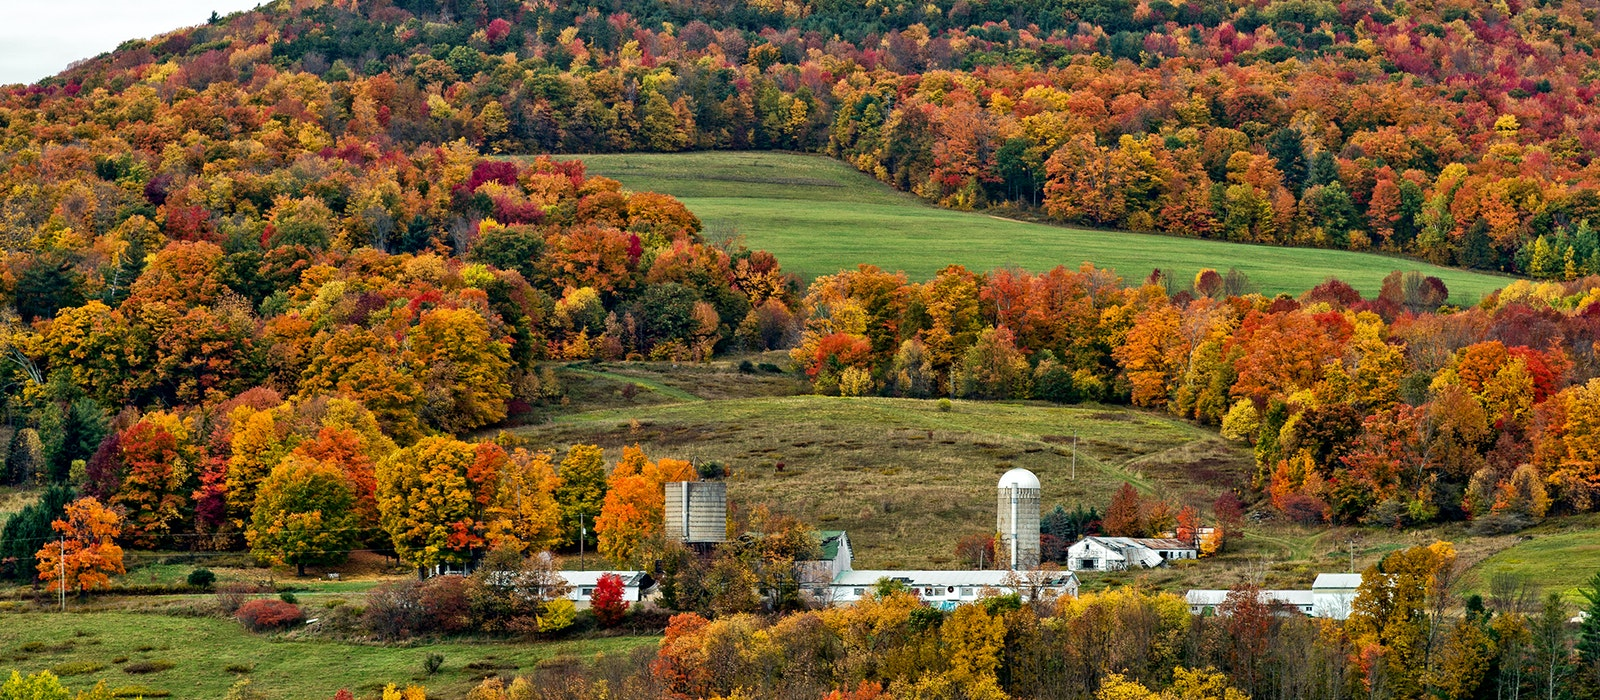 Fall colors across New York and New England are expected to be good this year, but the southern parts of the region will get the most vibrant foliage.